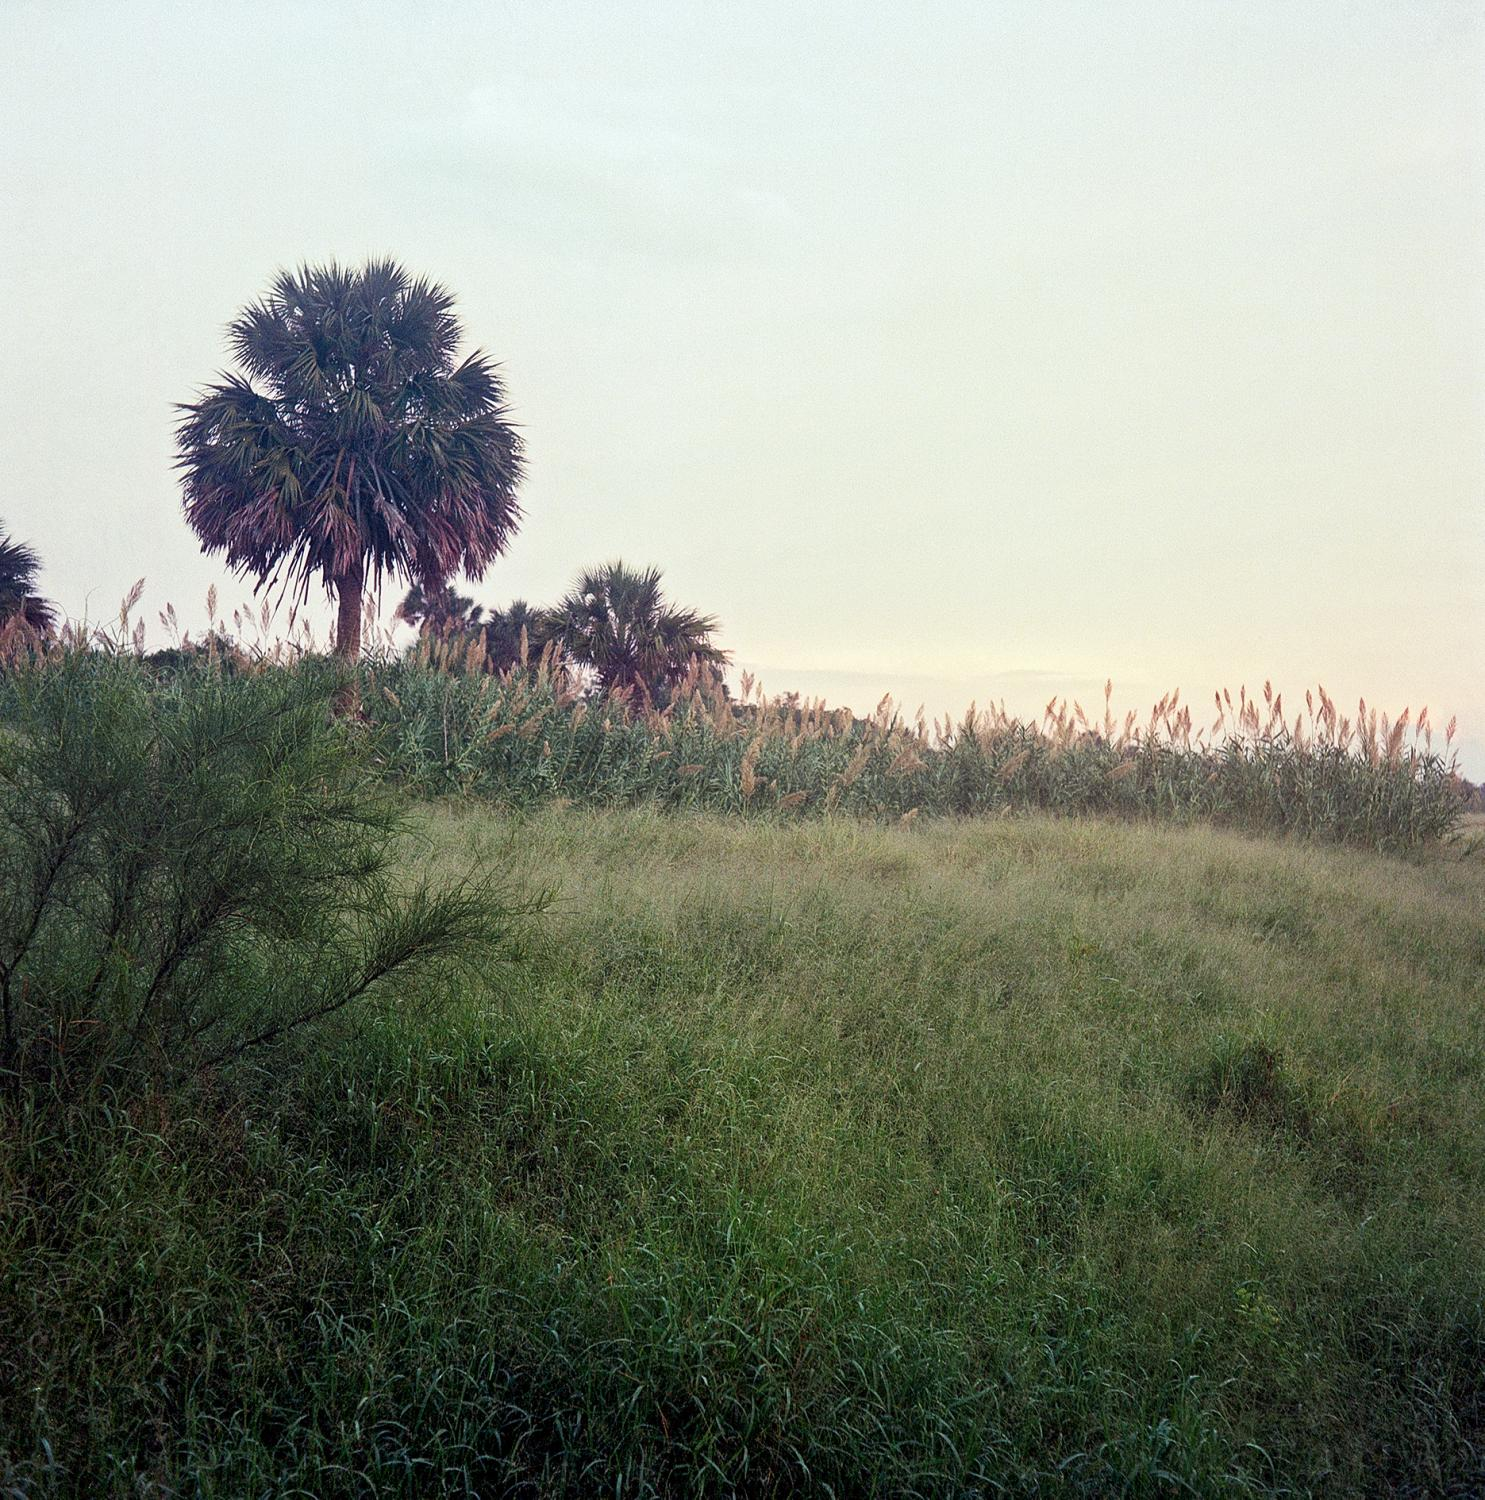 Brownsville, TX - OCTOBER 16, 2020: Landscape at the U.S.-Mexico border.